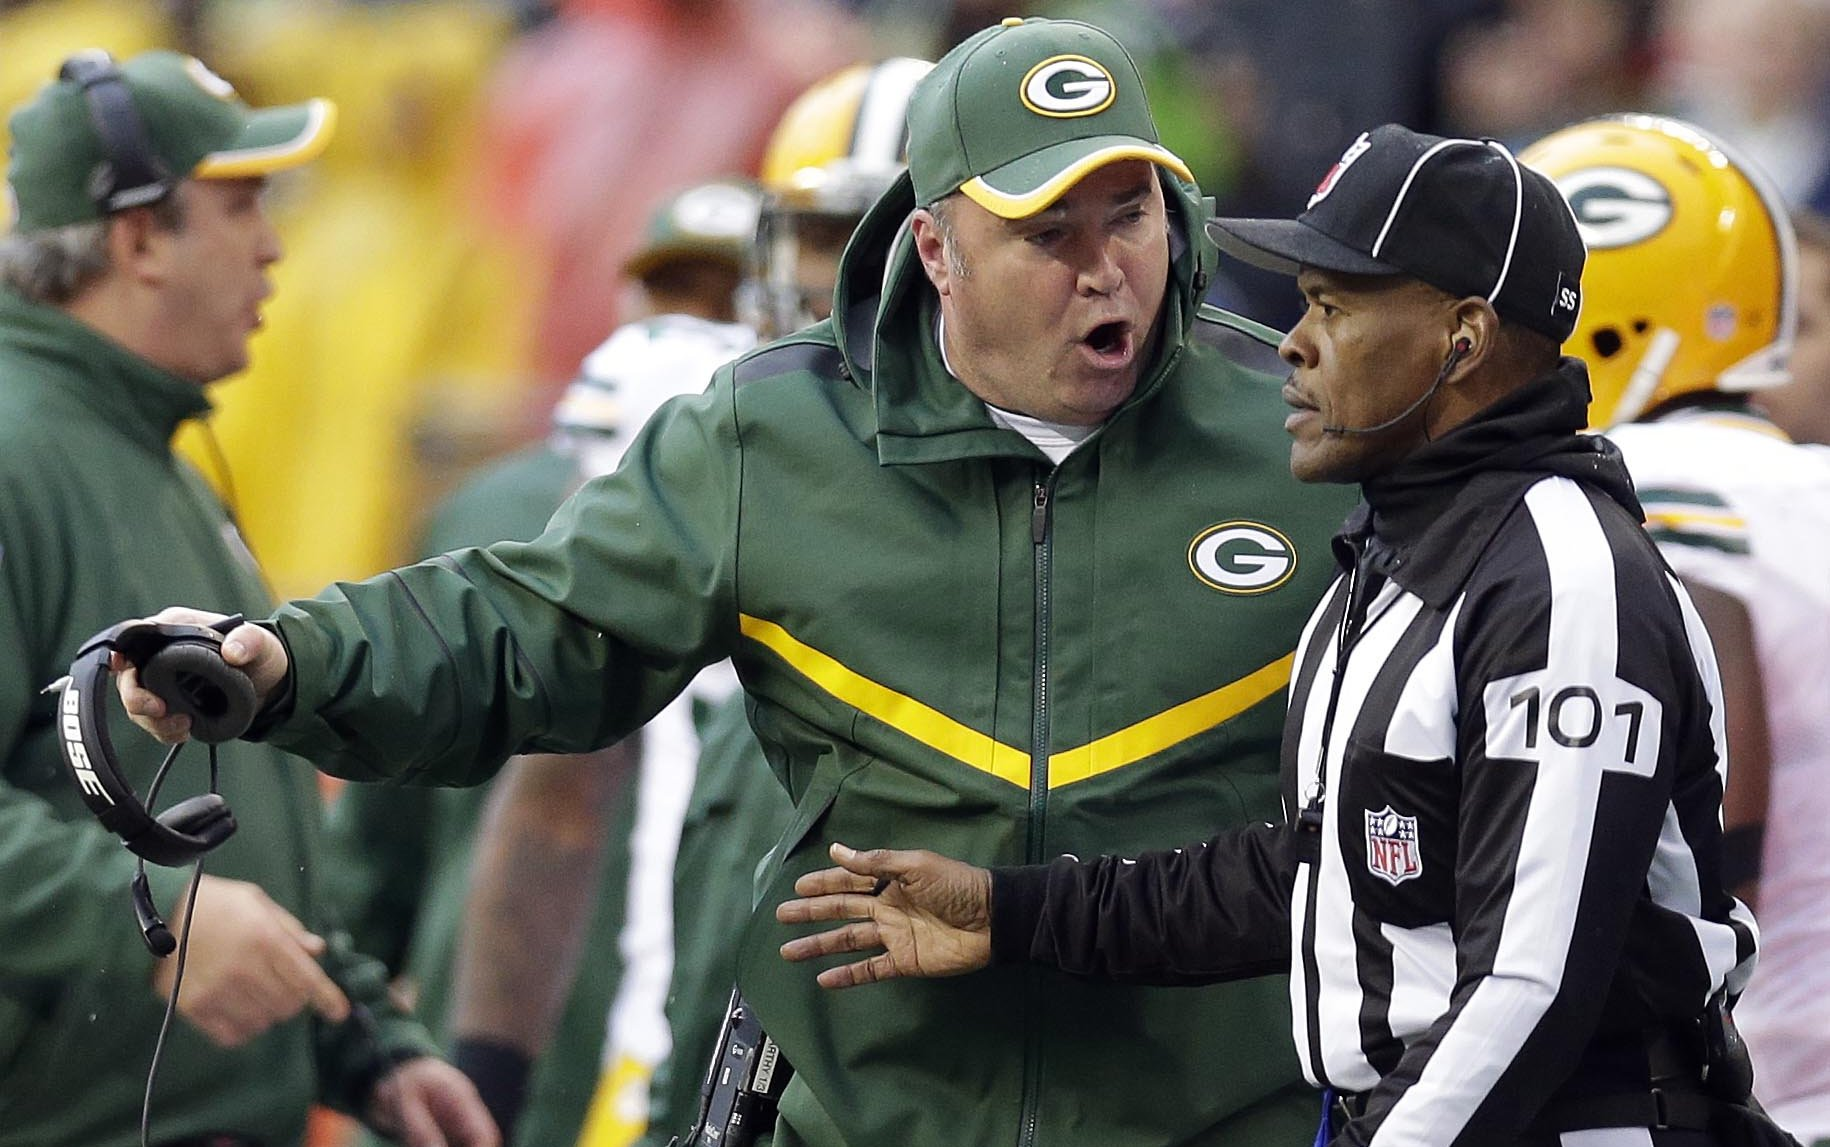 Happy Birthday to Mike McCarthy, who turns 54 today!